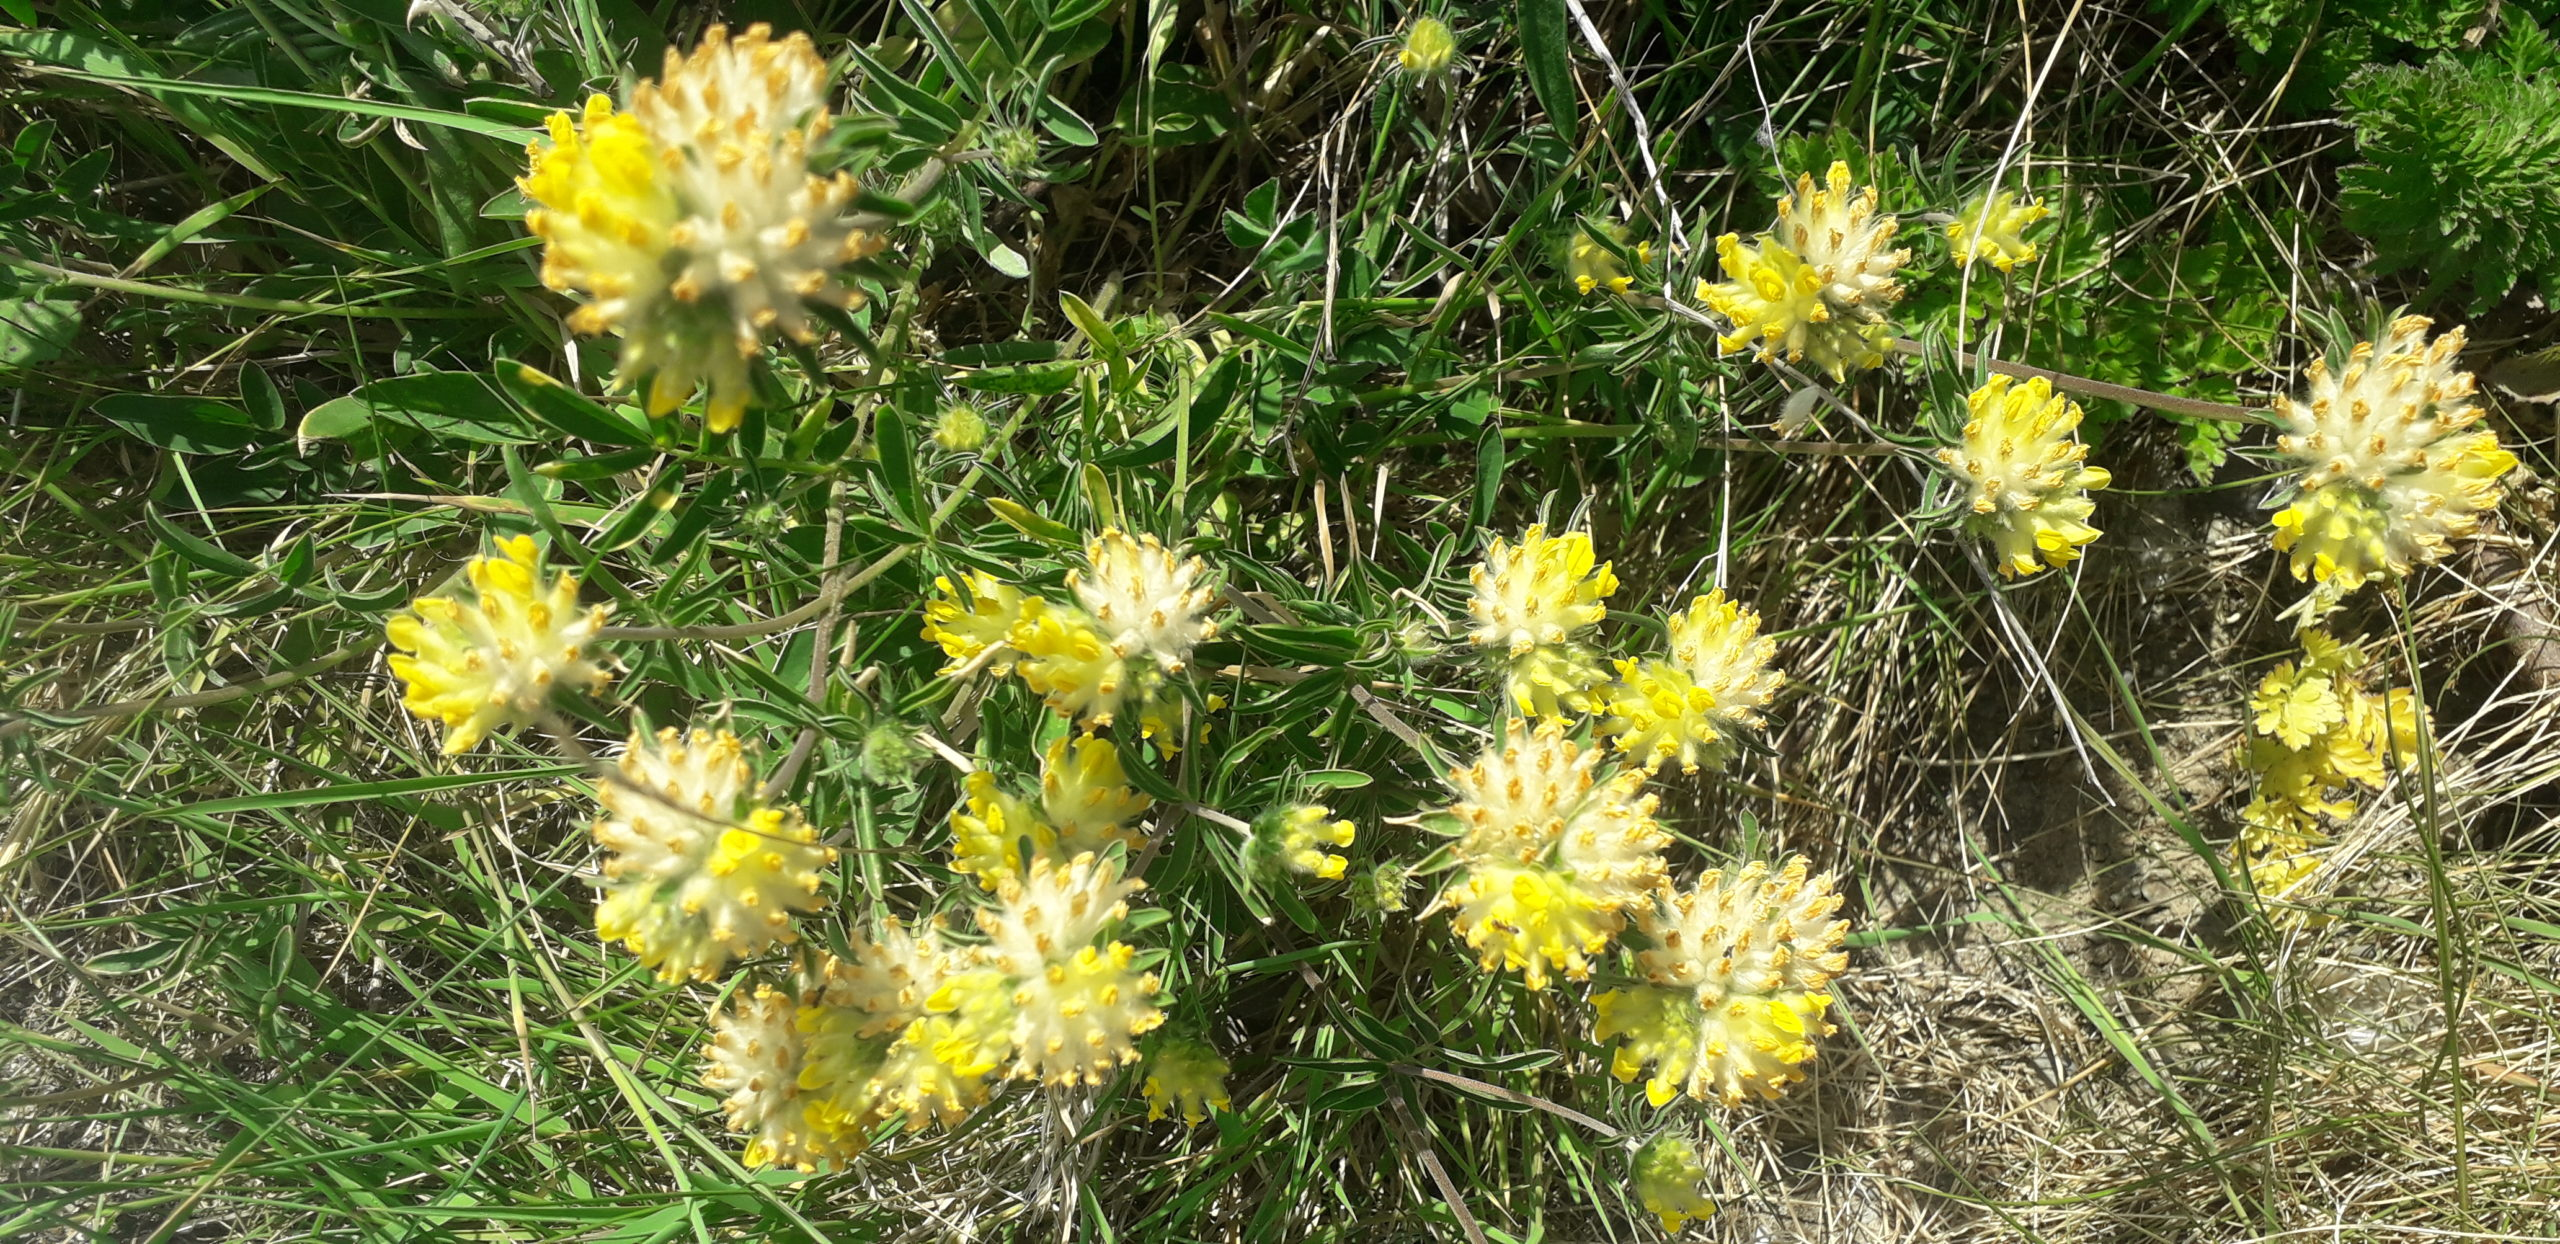 wild-kidney-vetch-foraging-coastal-plants-orchards-near-me